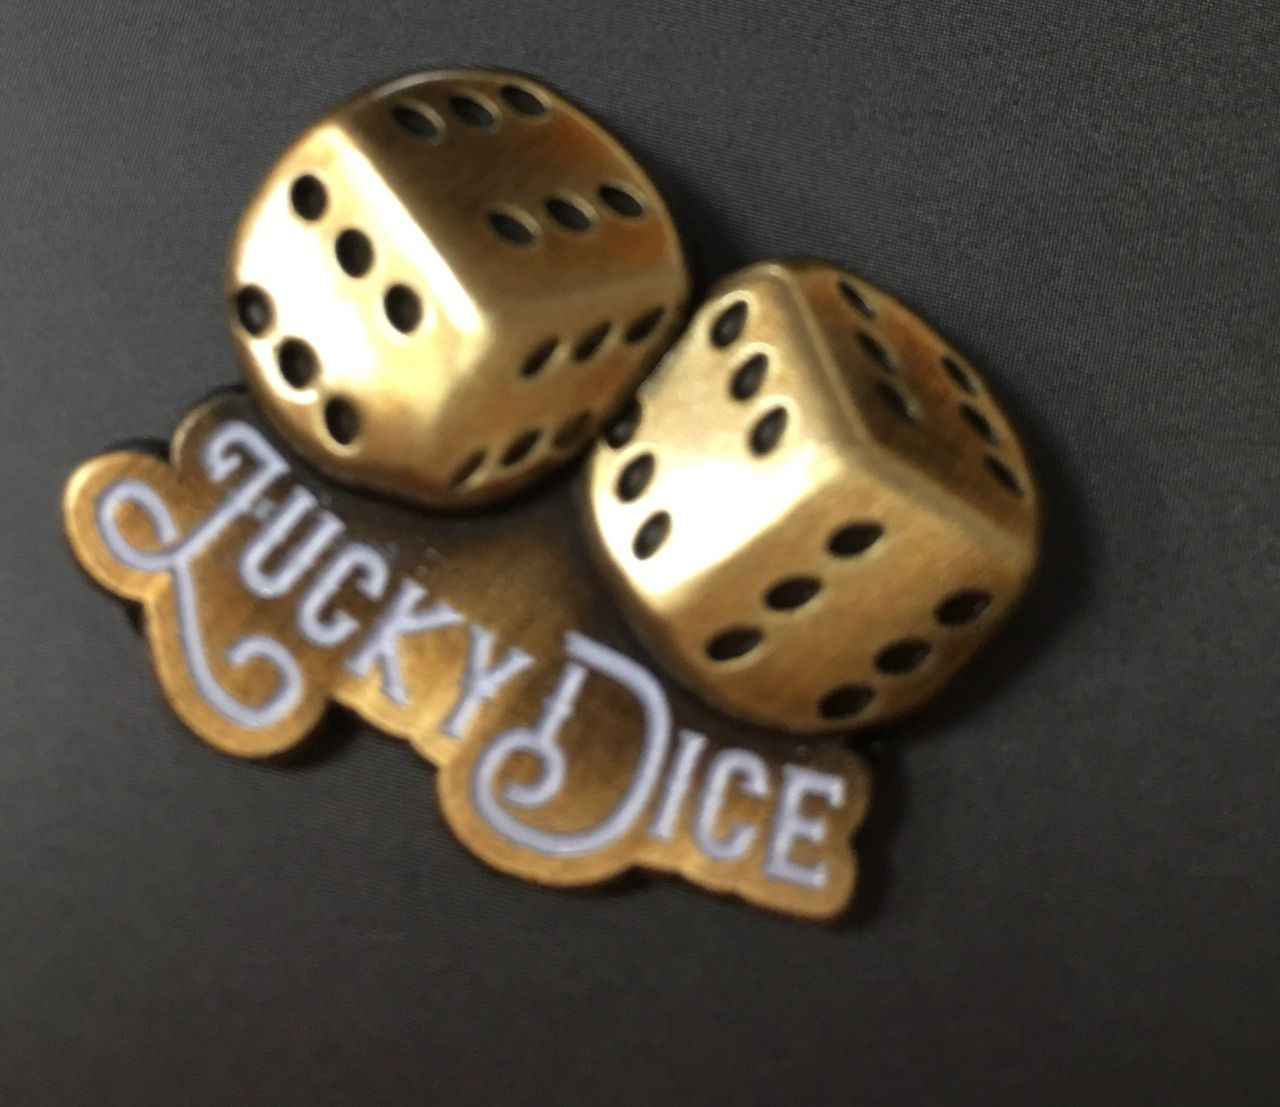 Pins lucky dice